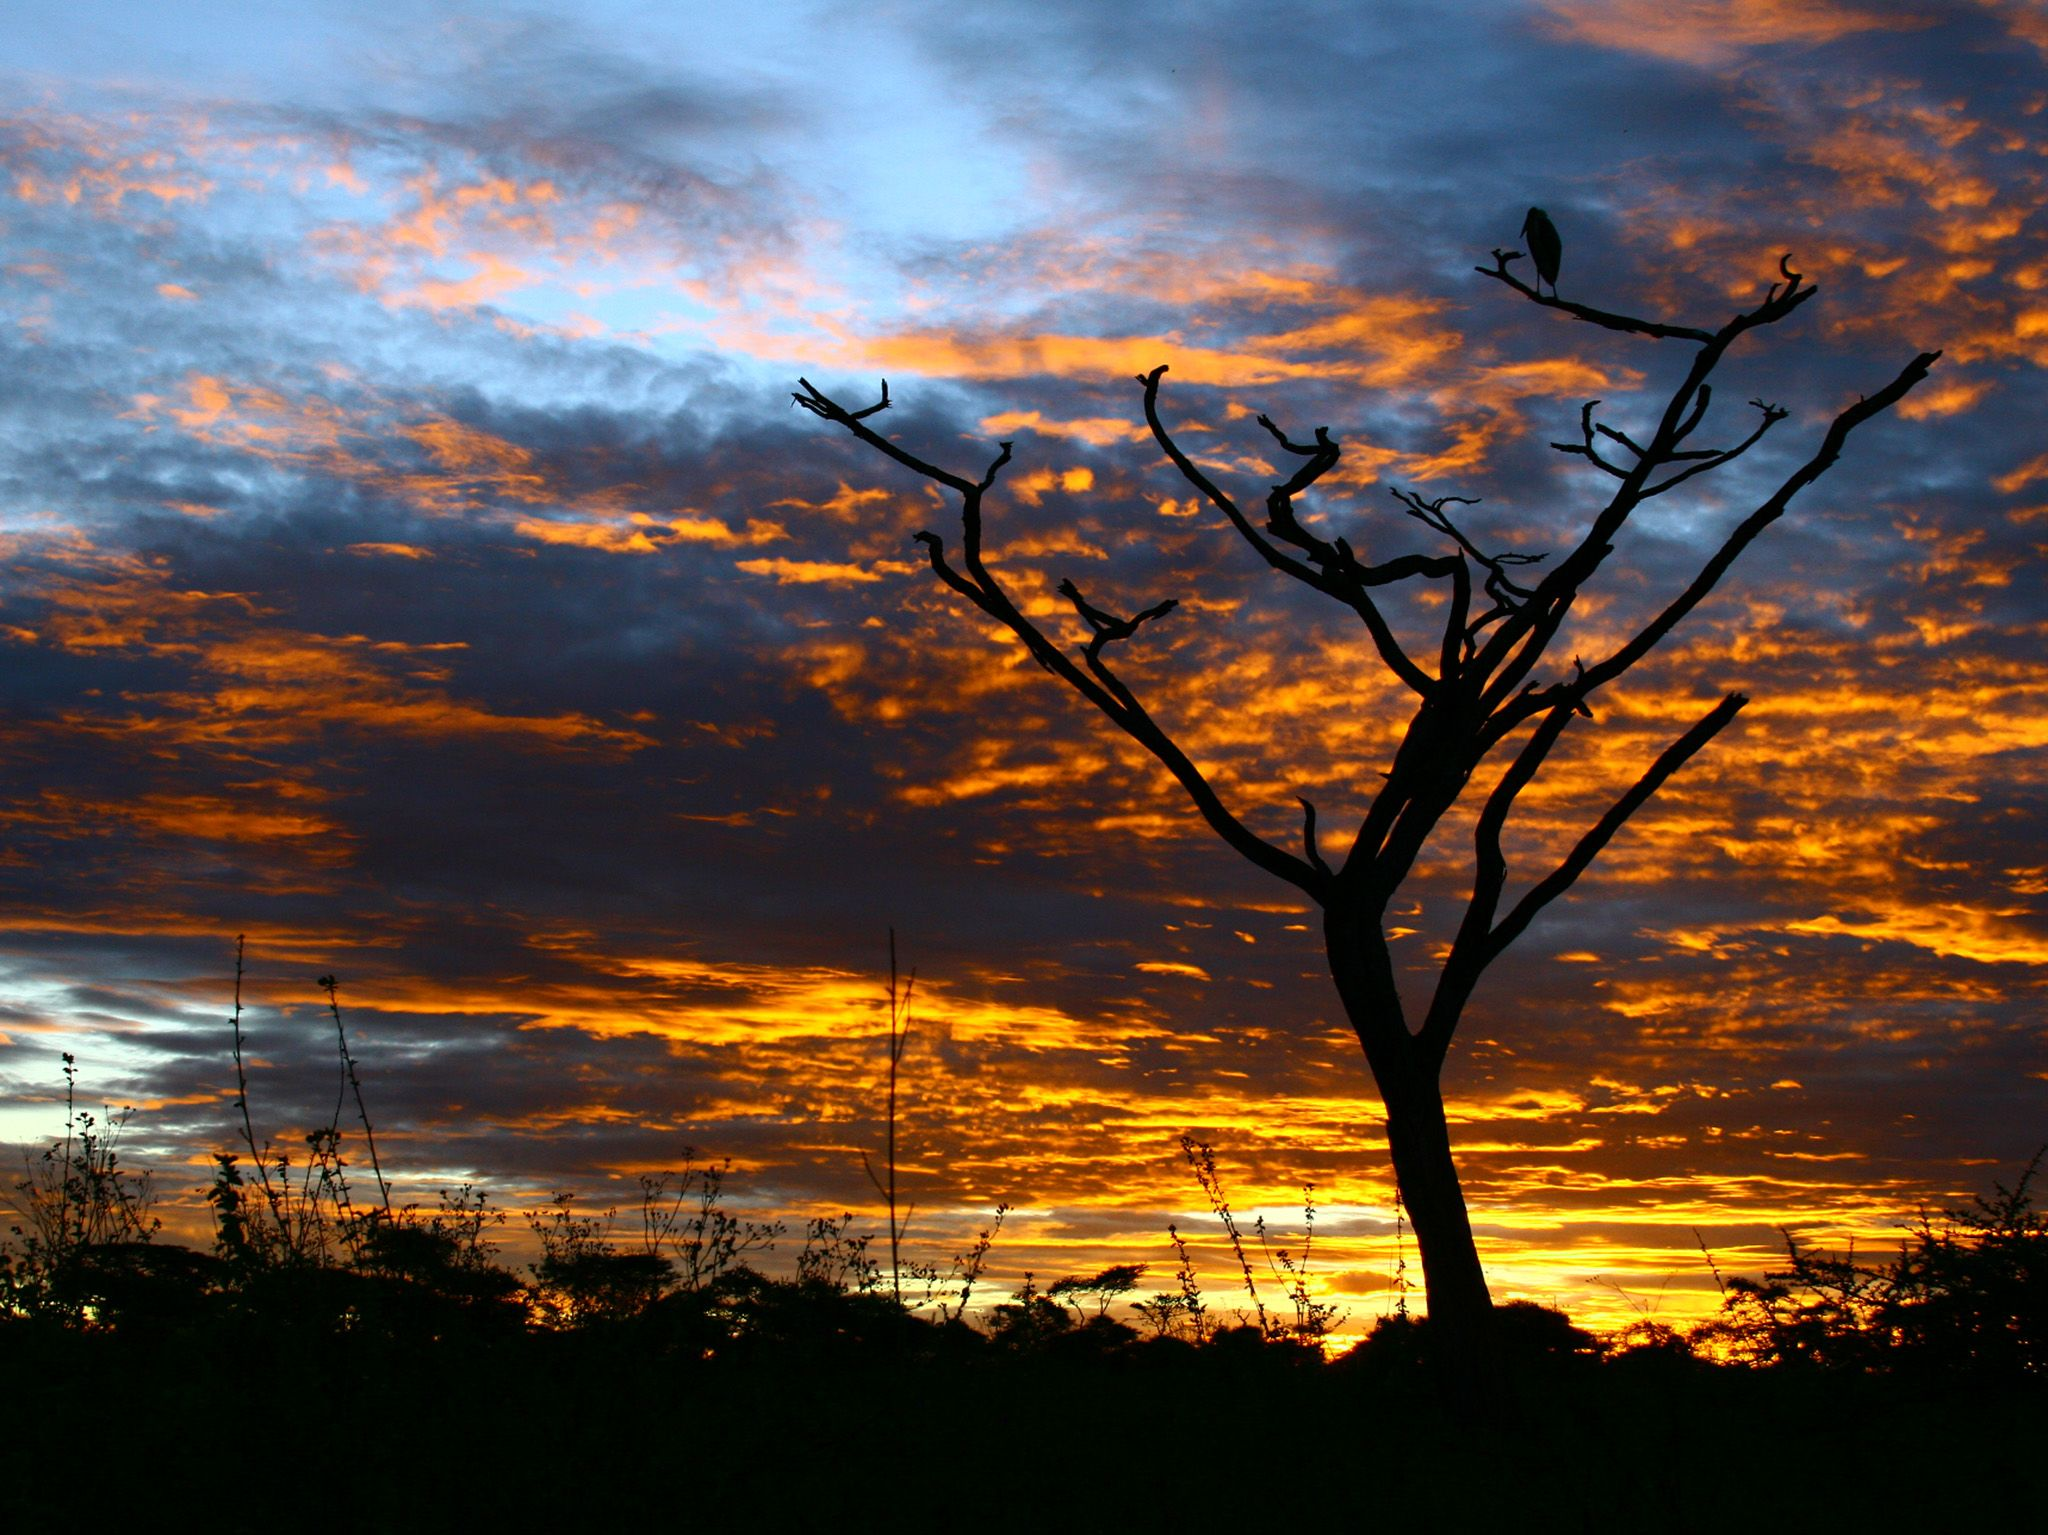 Dead acacia tree with stork at sunrise.  This image is from Kings of the Kill. [Photo of the day - August 2017]